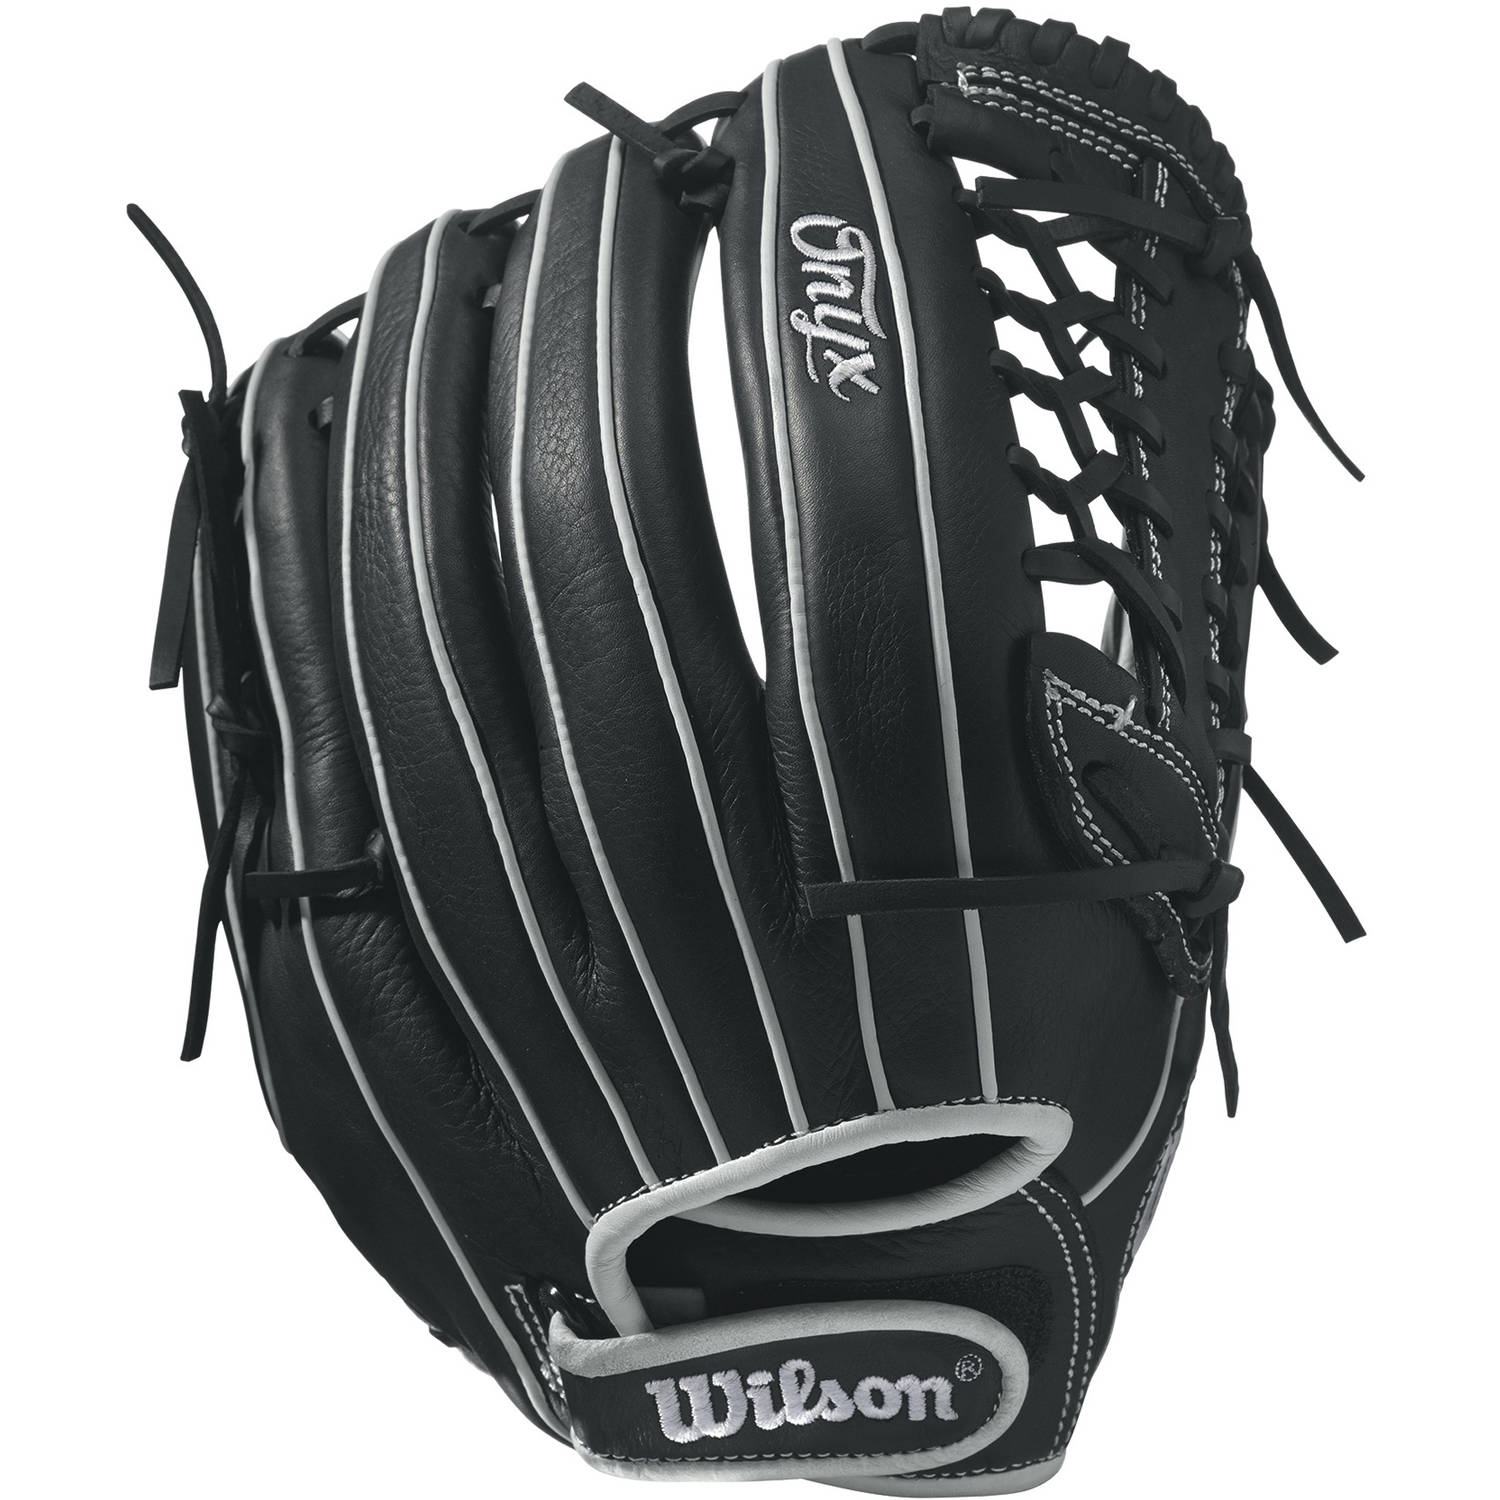 Wilson Sporting Goods Onyx Outfield Fast Pitch Glove